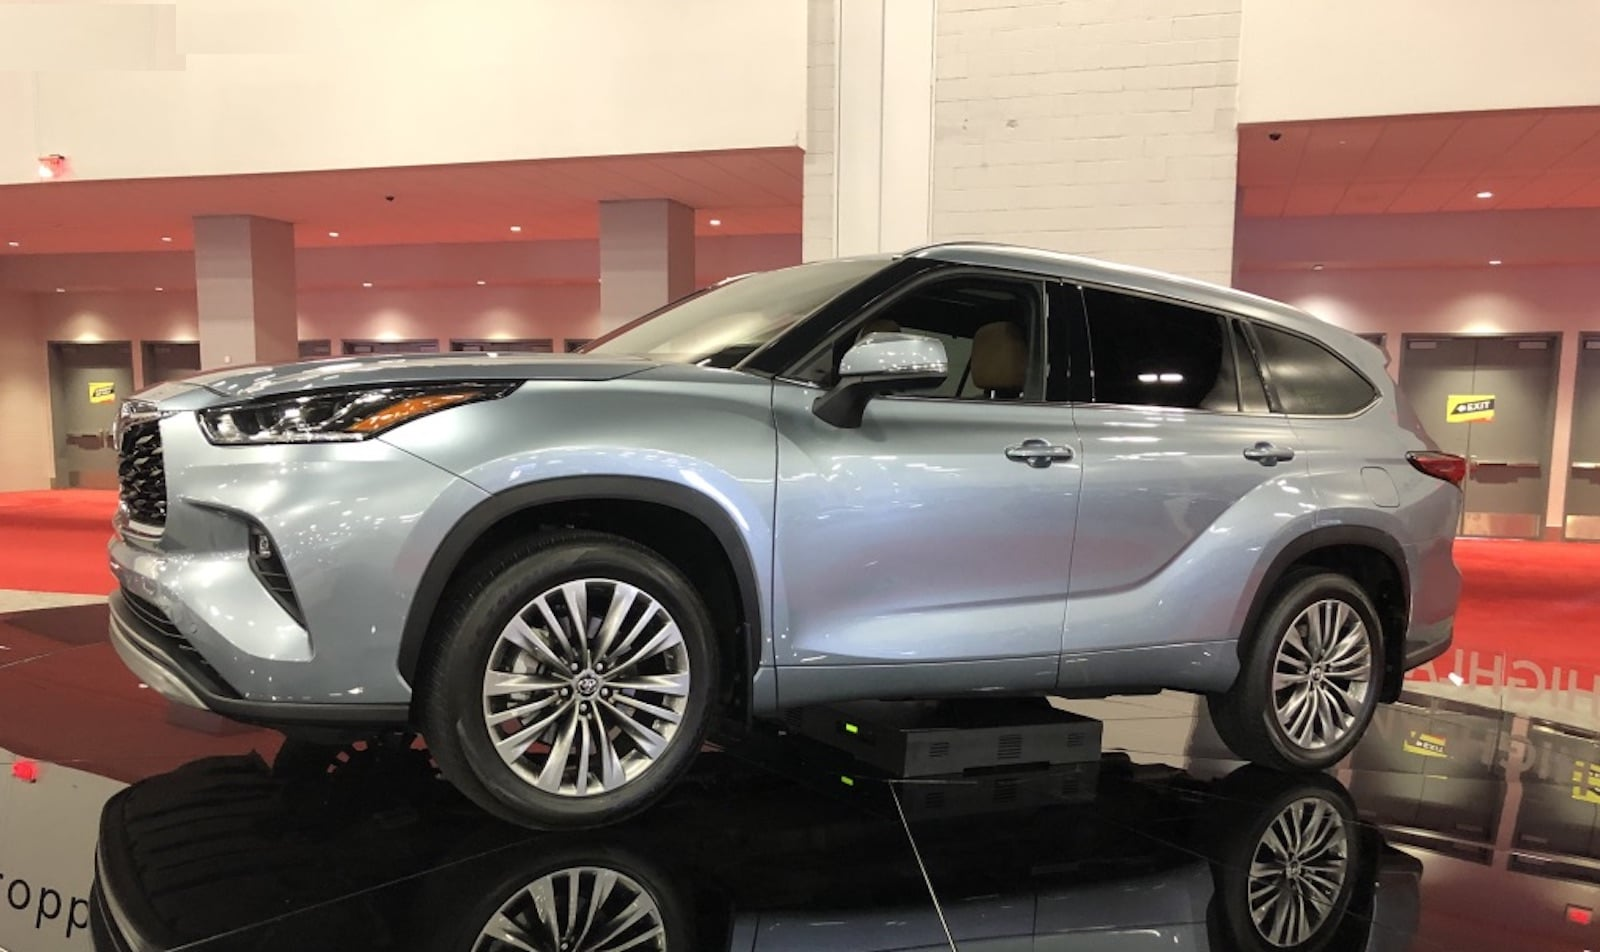 Miami Auto Show 2020.Miami Auto Show Gives Floridians A Look At 2020 Models